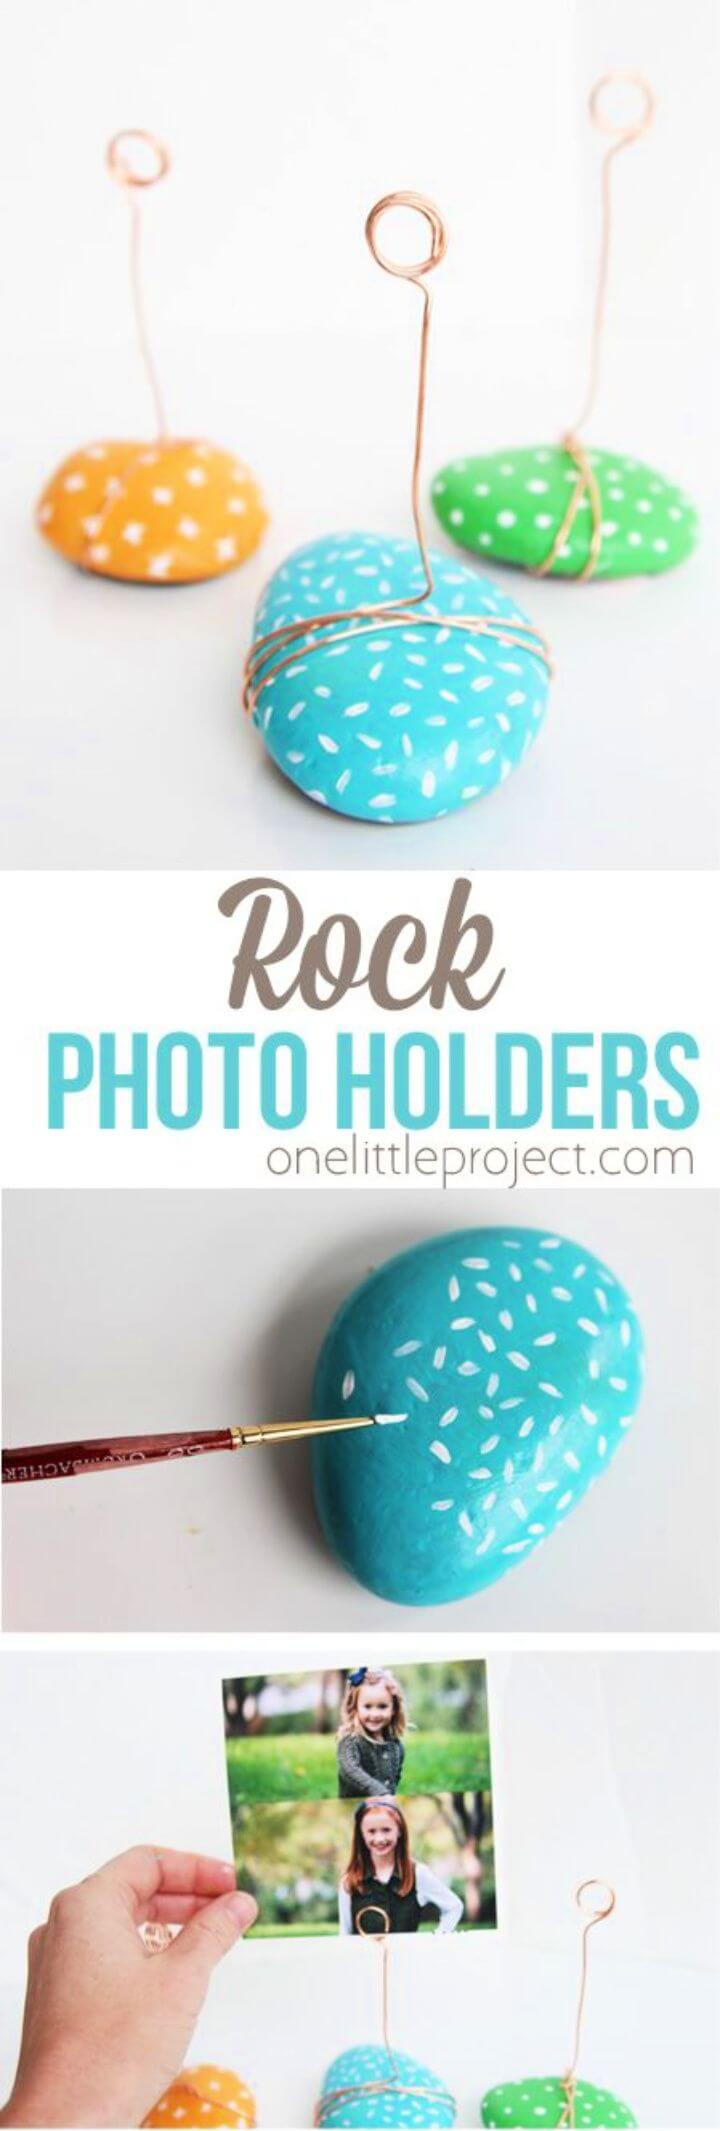 DIY Painted Rock Photo Holders For Summer Activities